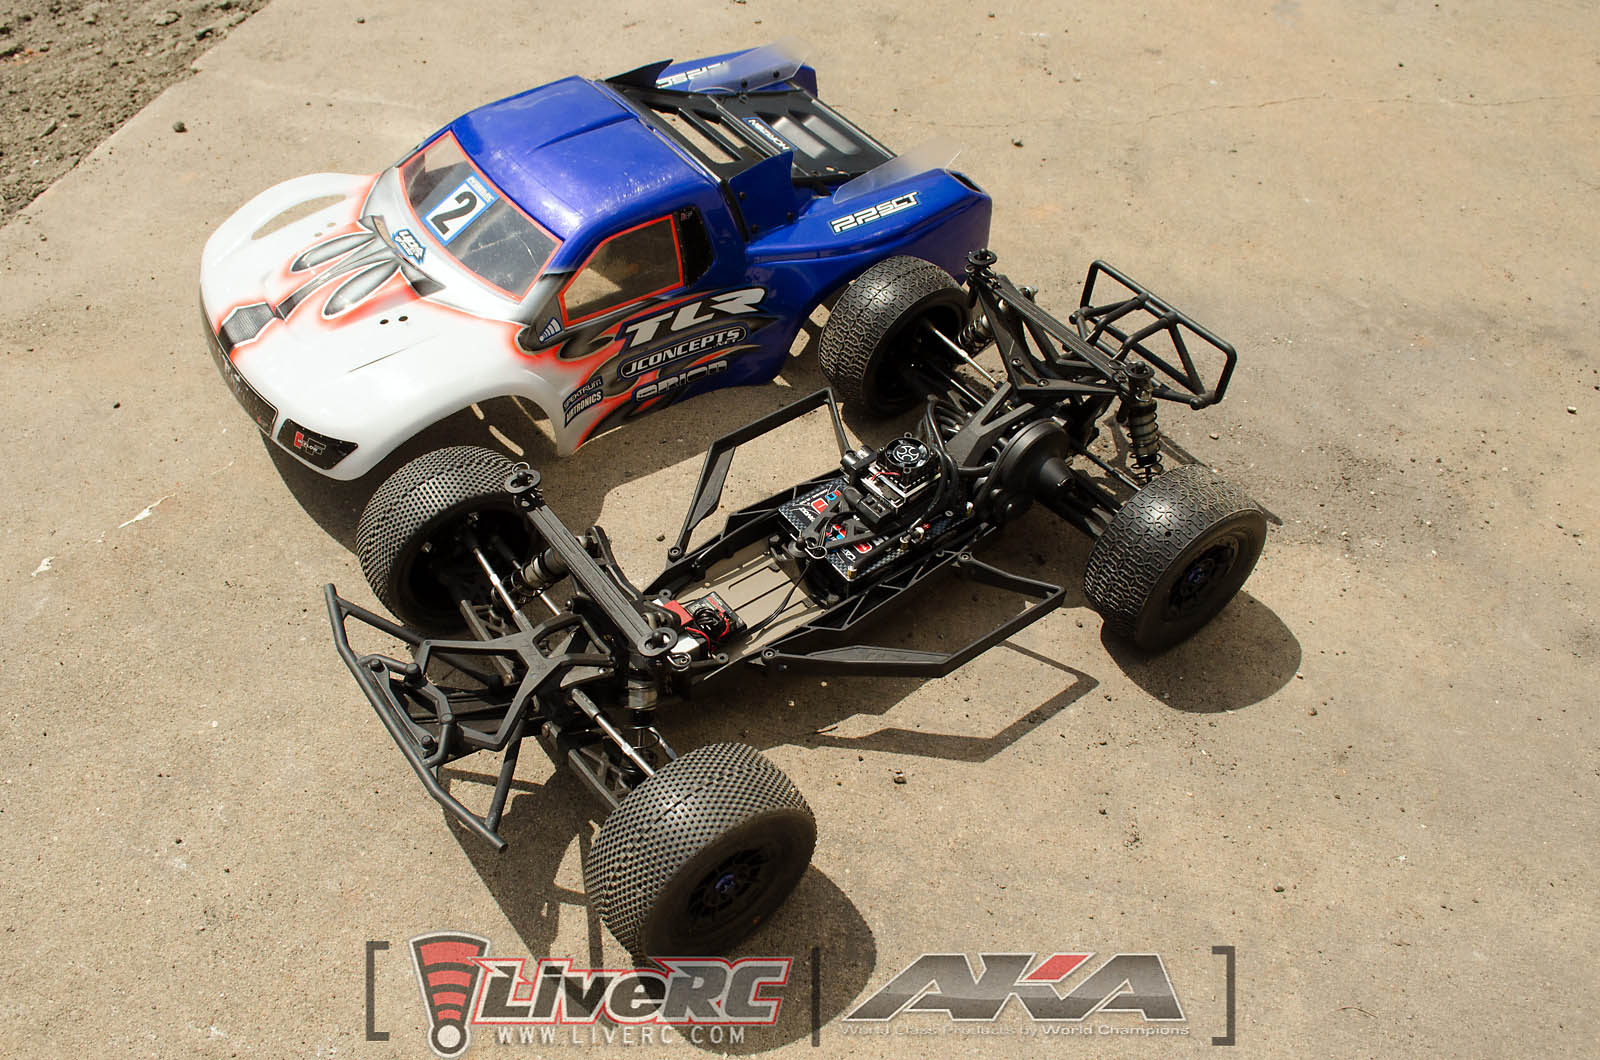 Design also Jay Lenos Cars 63 also Airlock further Page5 in addition Gallery. on electric motor